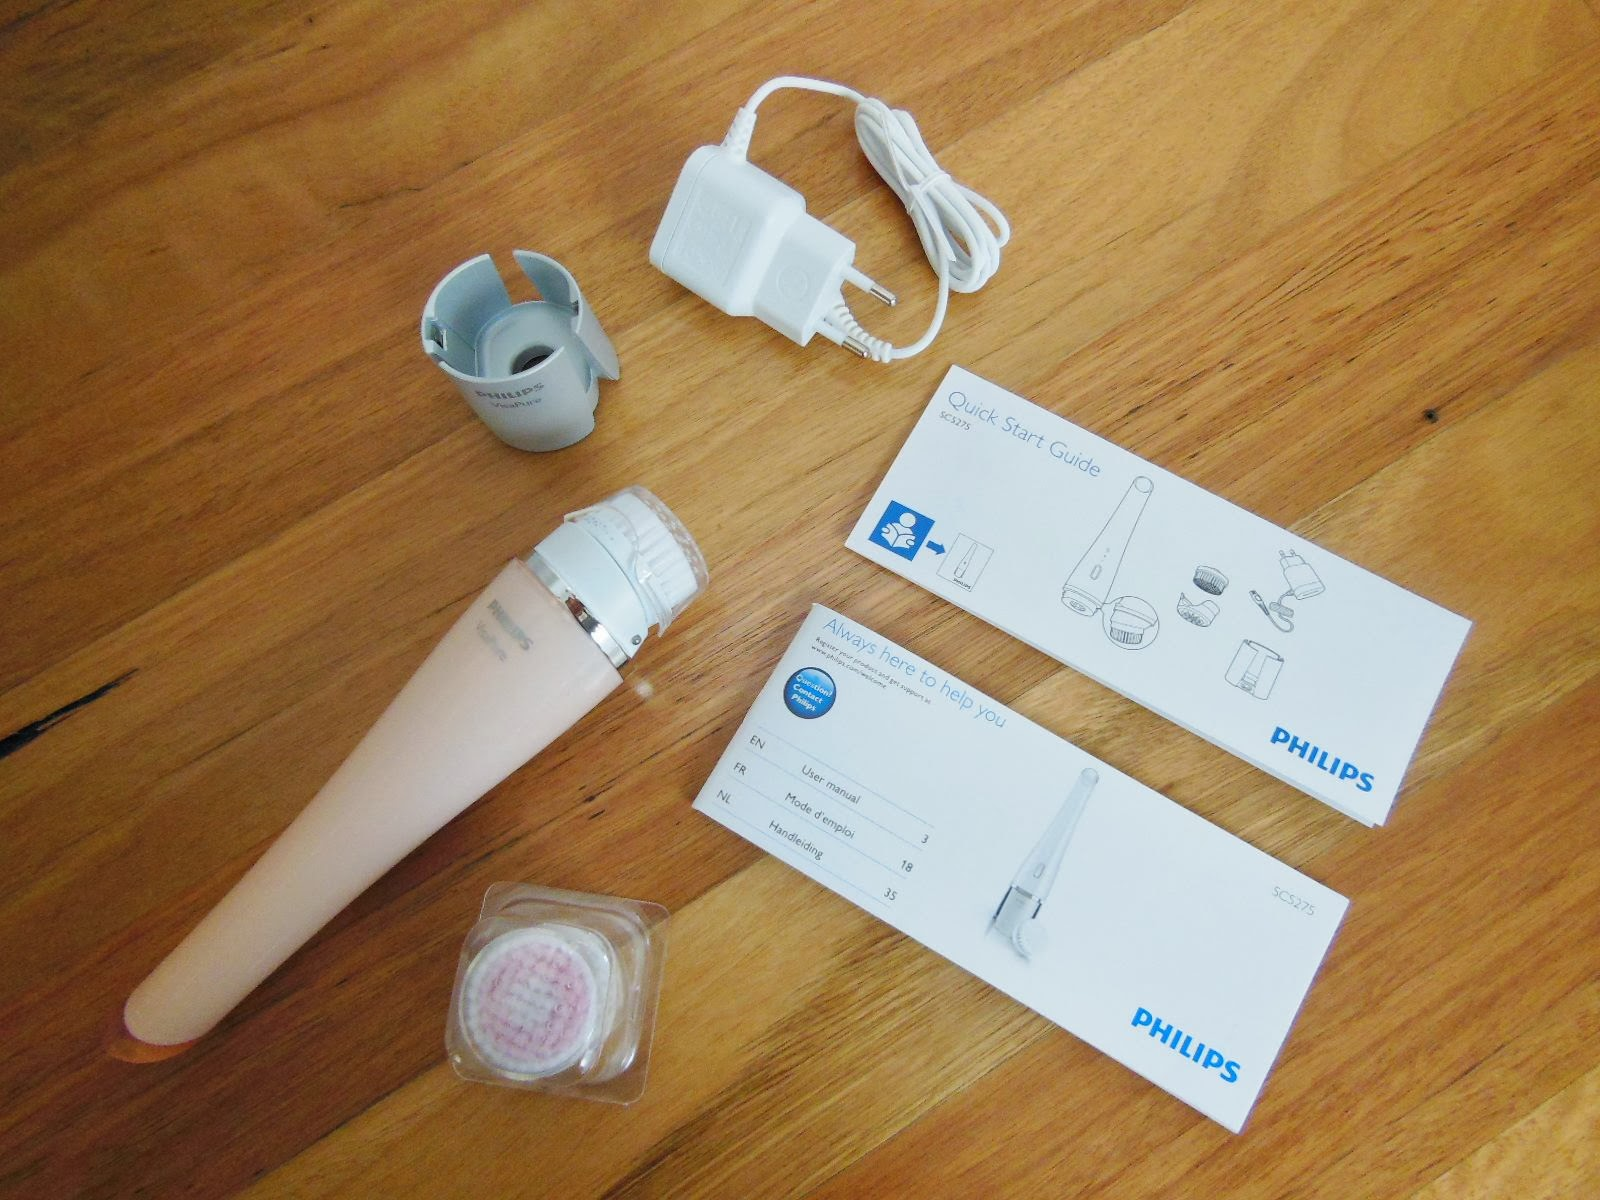 May_rua_mat_Philips_PureRadiance_Skin_Cleaning_System